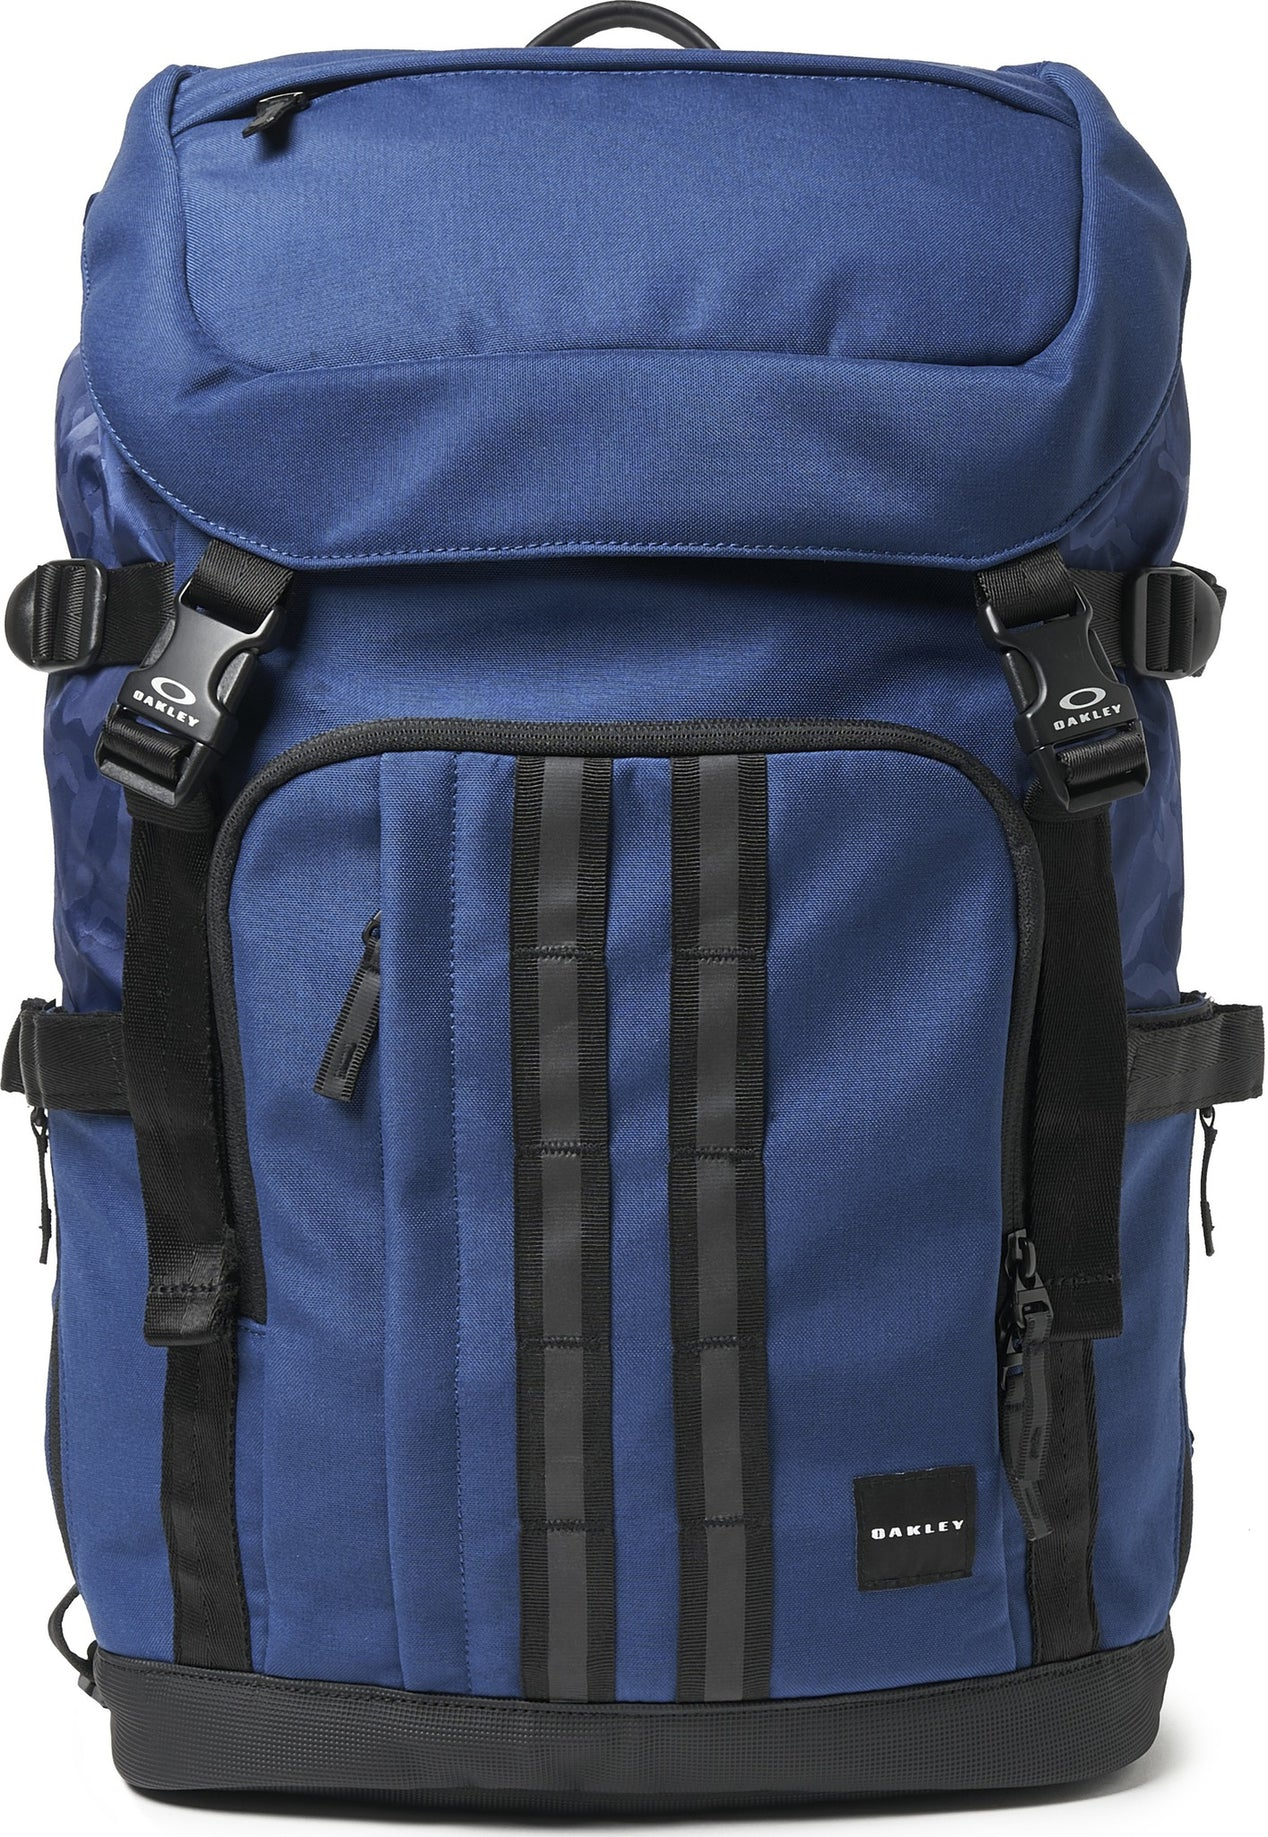 a91bf68c0b37f Oakley Utility Organizing Backpack - 24.5l